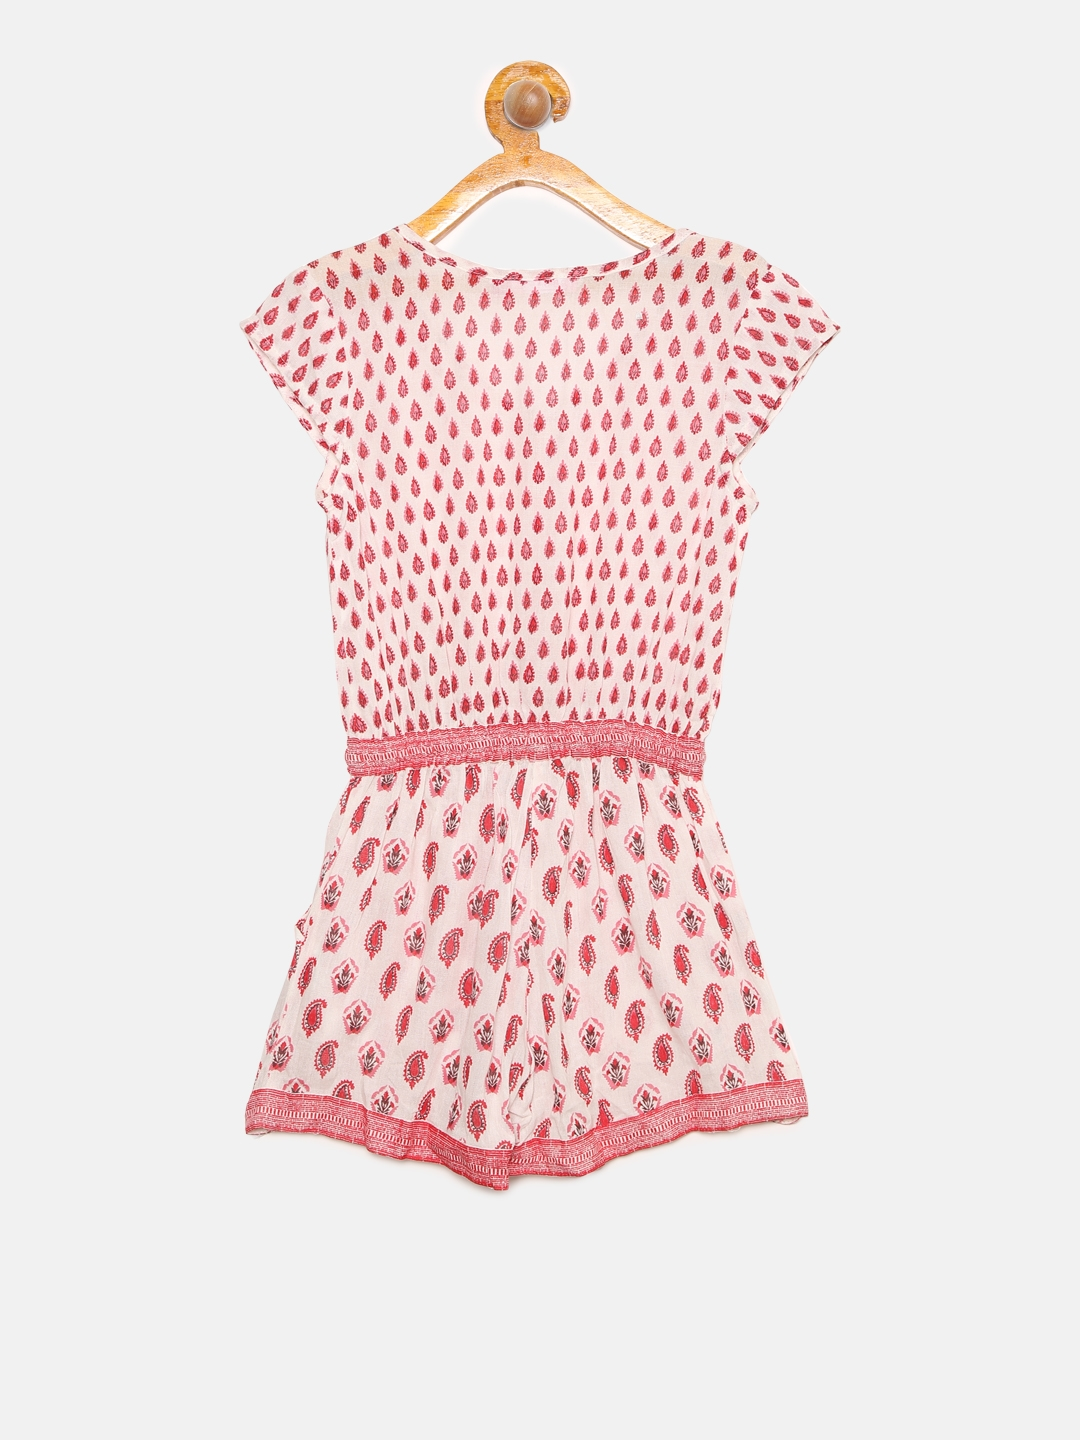 fc286b2852a Buy Biba Girls Pink   White Paisley Print Playsuit - Jumpsuit for ...